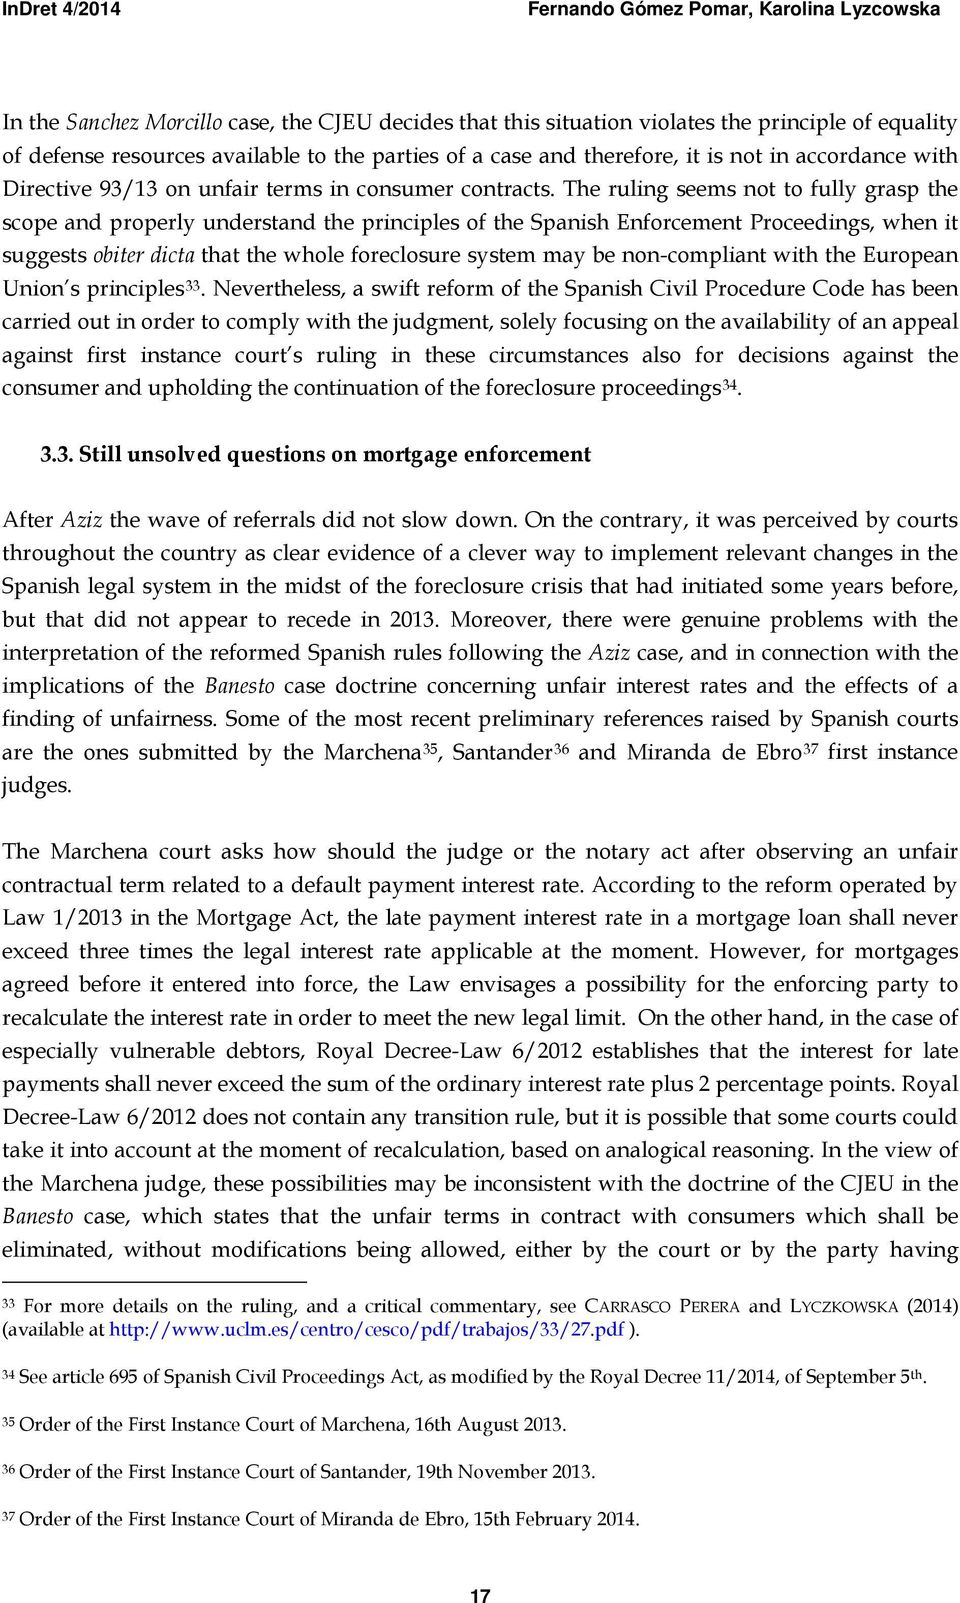 The ruling seems not to fully grasp the scope and properly understand the principles of the Spanish Enforcement Proceedings, when it suggests obiter dicta that the whole foreclosure system may be